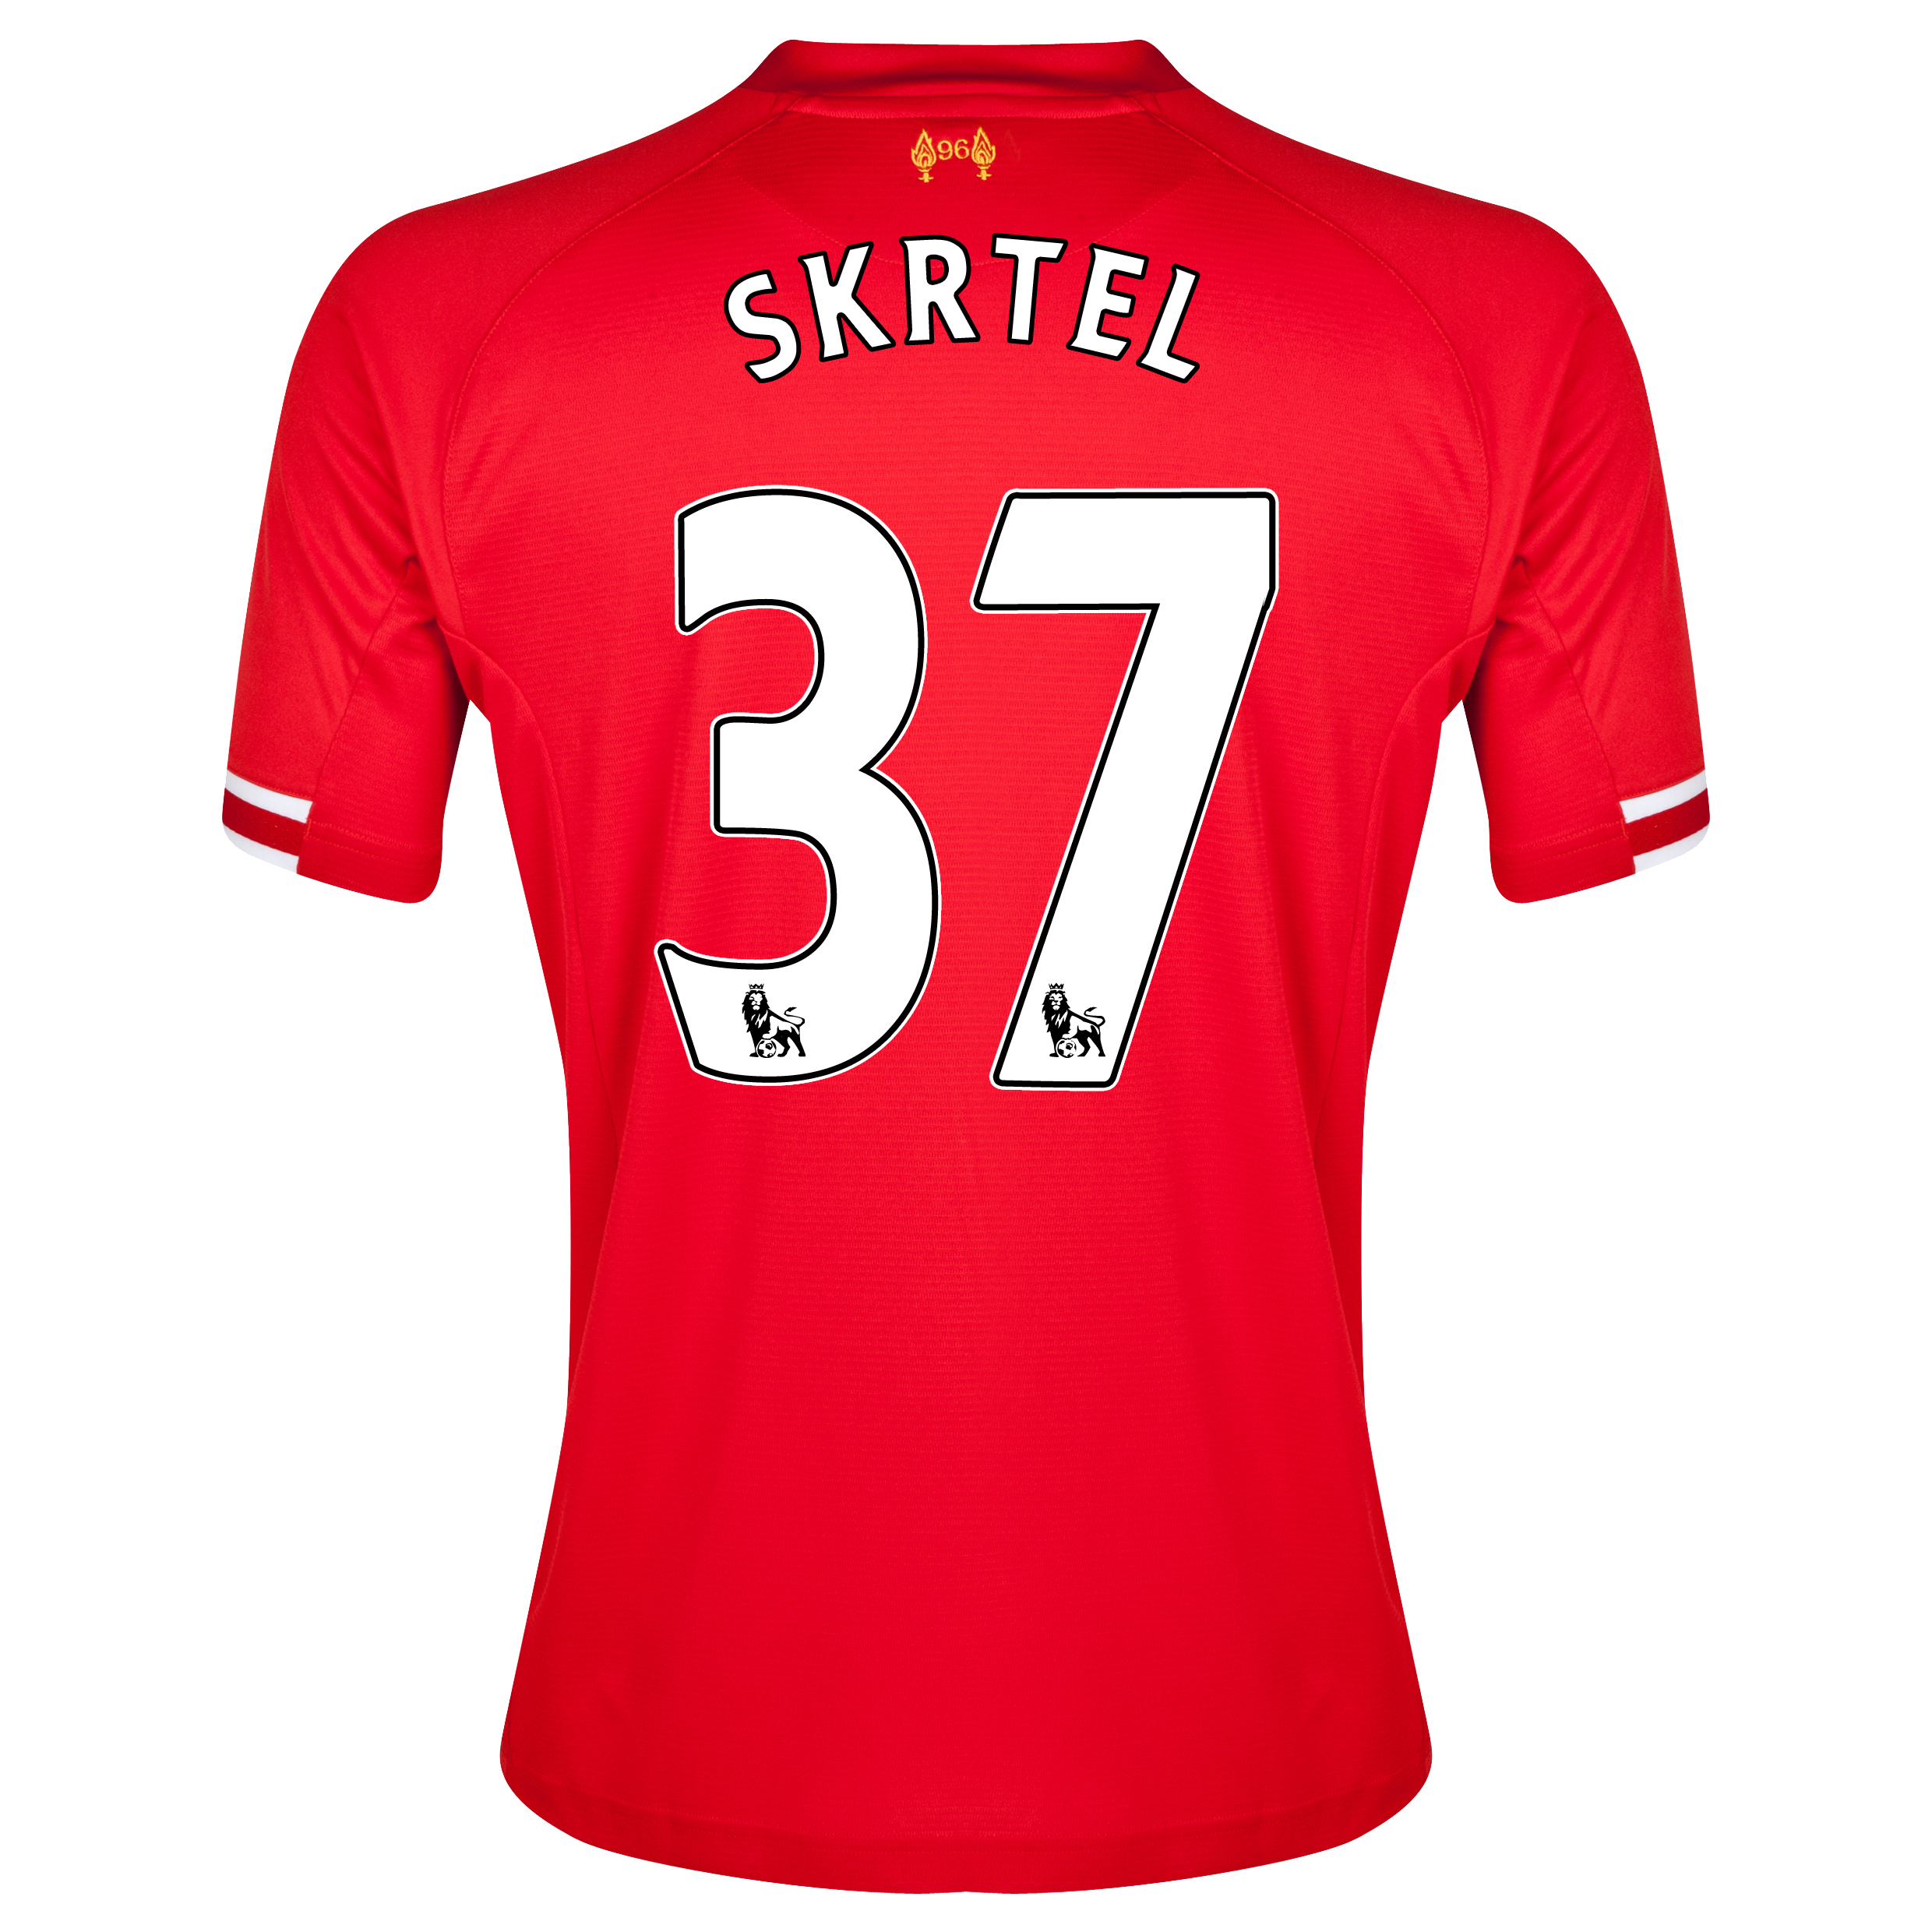 Liverpool Home Shirt 2013/14 with Skrtel 37 printing